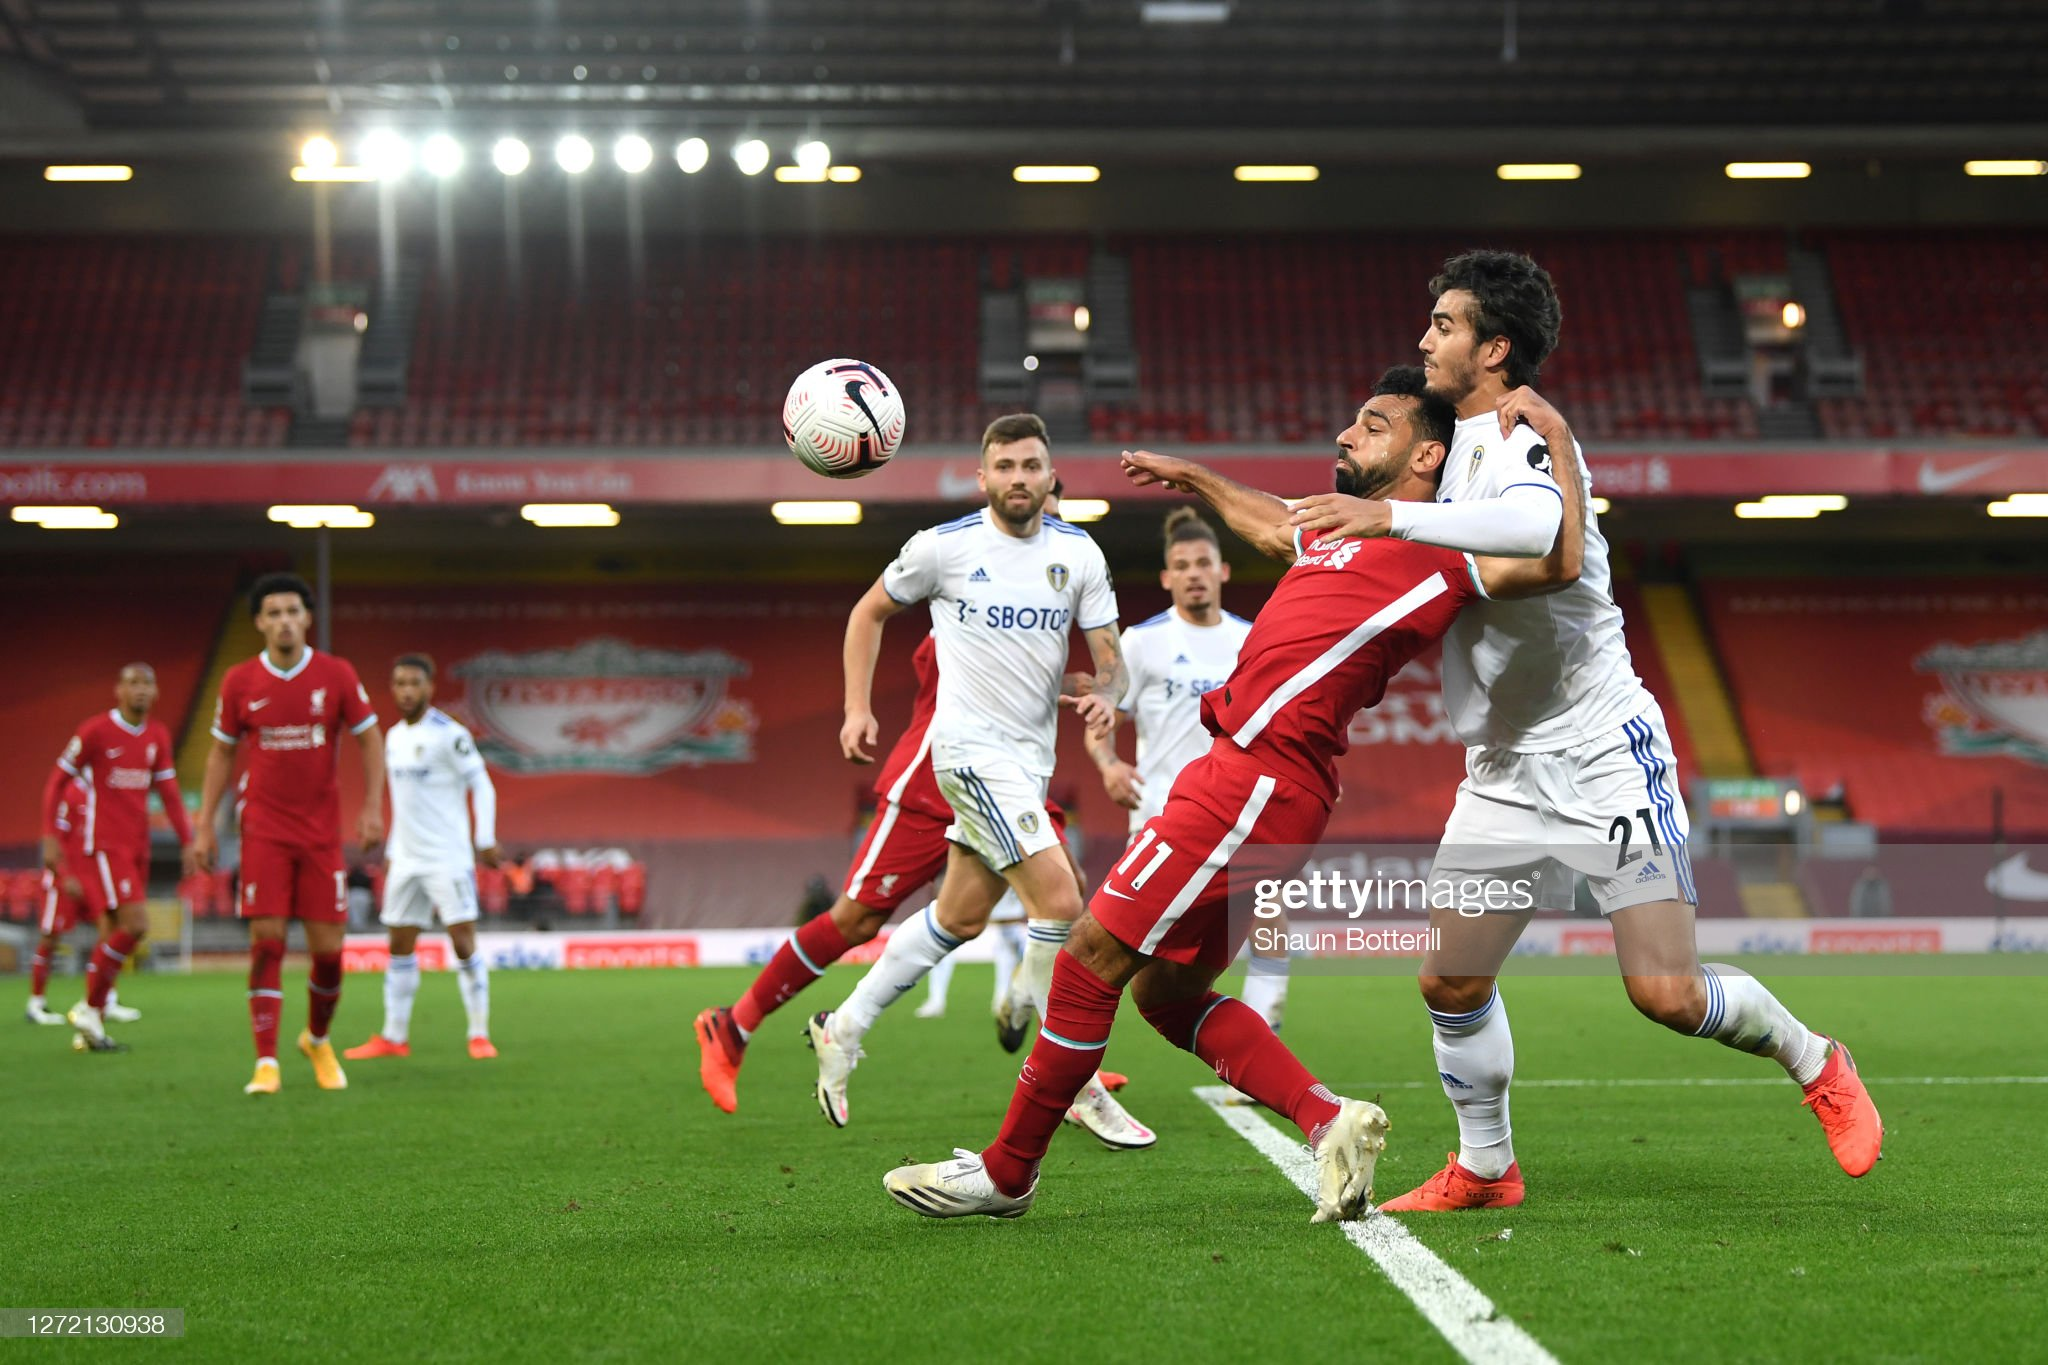 Leeds vs Liverpool preview, prediction and odds